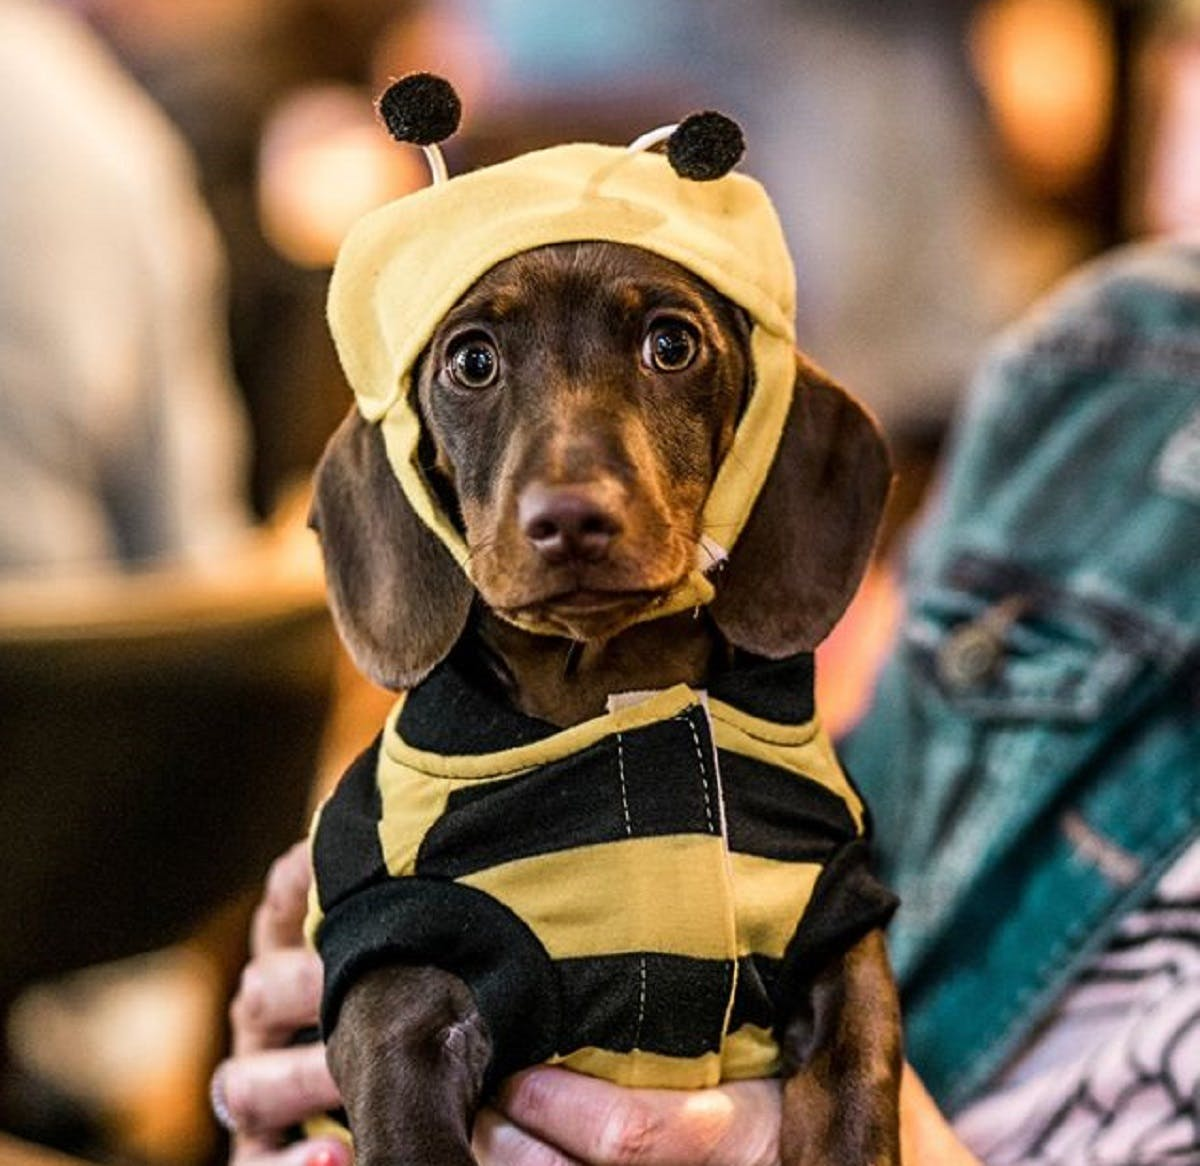 A dachshund cafe full of cute sausage dogs is coming to Manchester this month